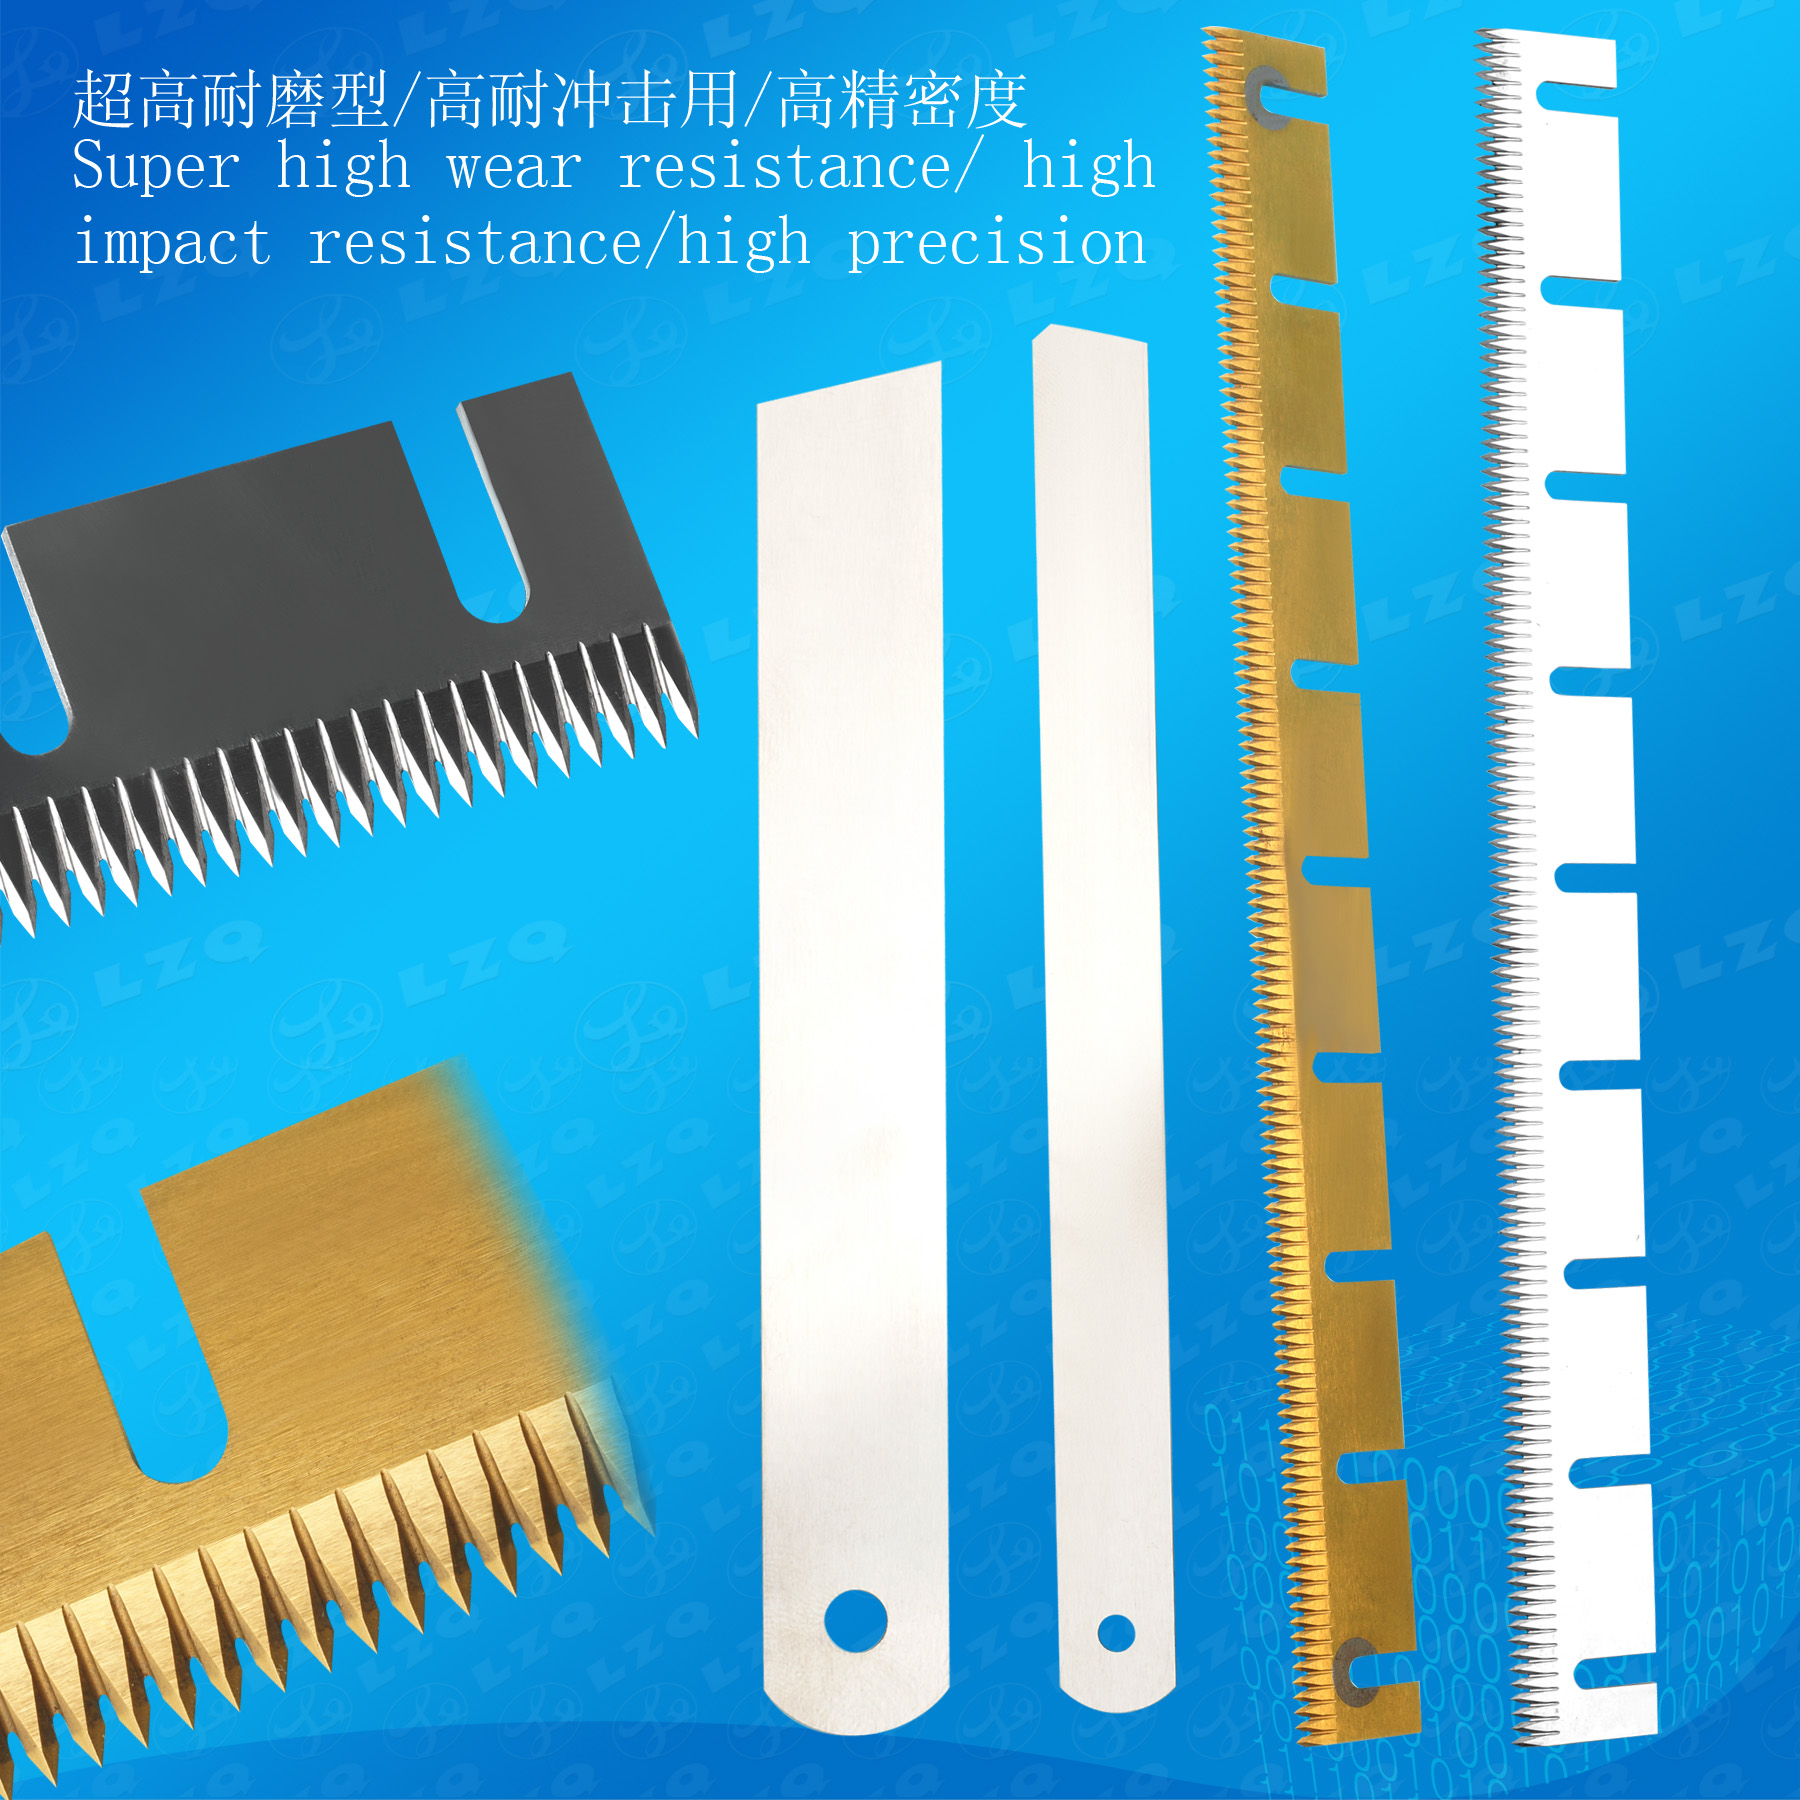 Alloy Saw Blade, Super Saw Blade, Metal Saw Blade